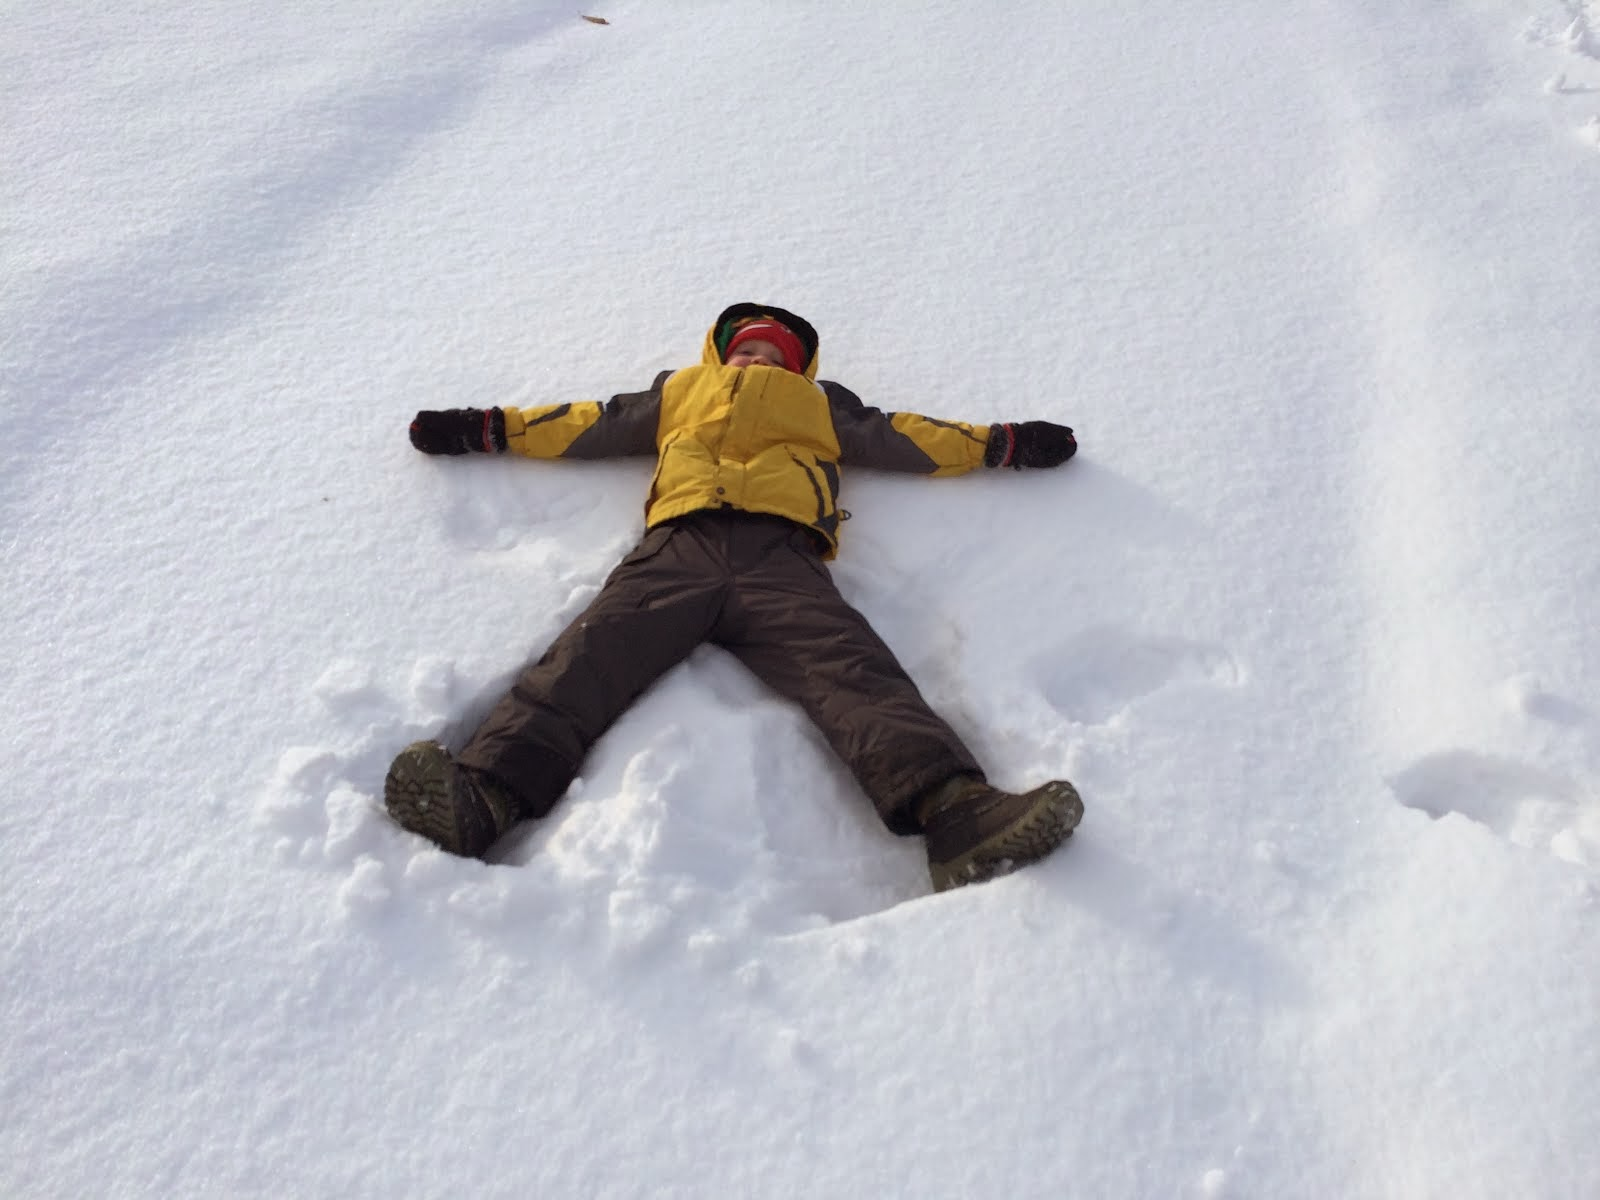 Perfect Snow Angel!